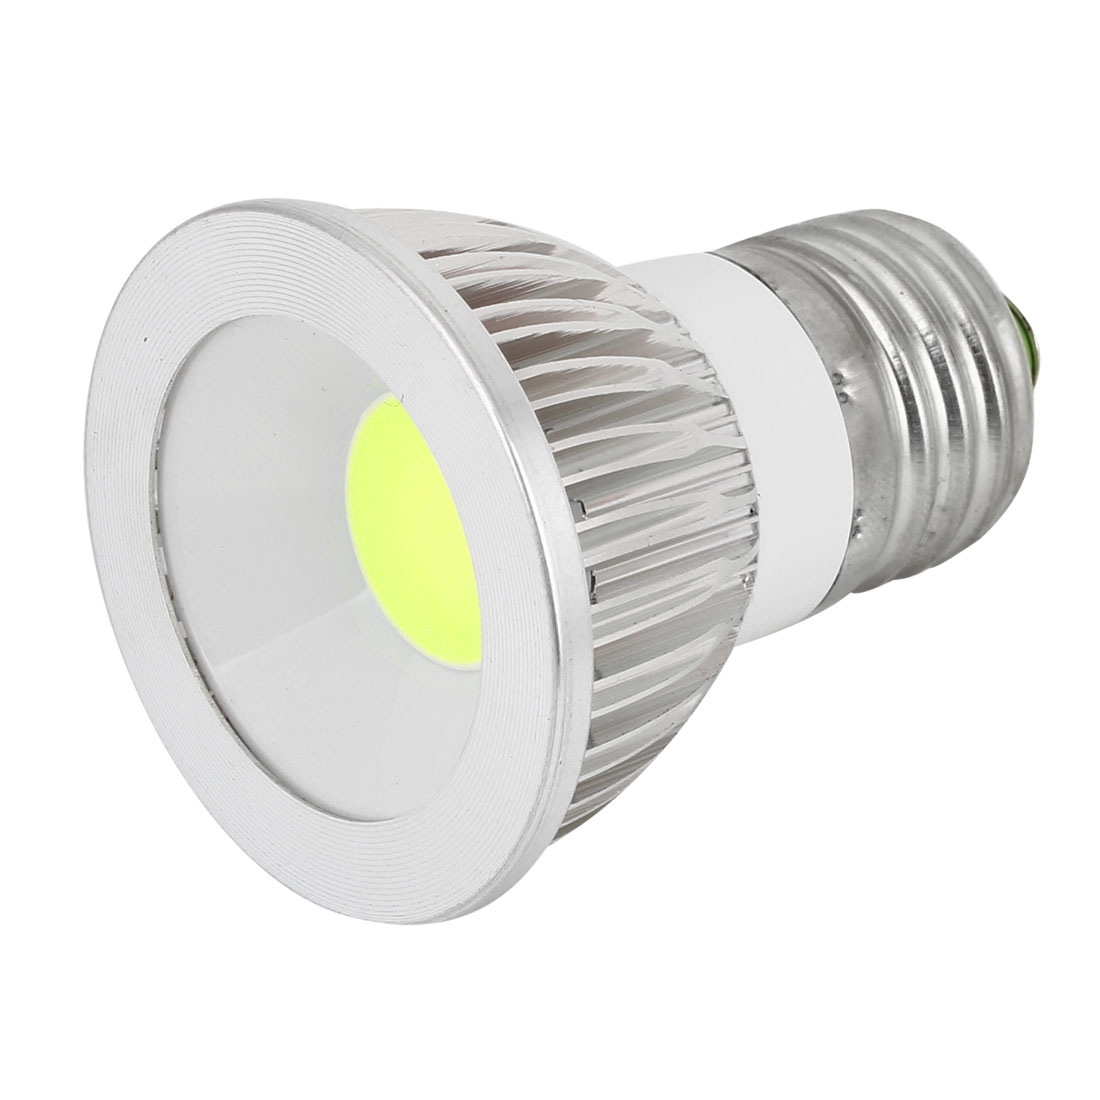 AC 85-265V 6W E27 Dimmable Cool White Light COB LED Downlight Spotlight